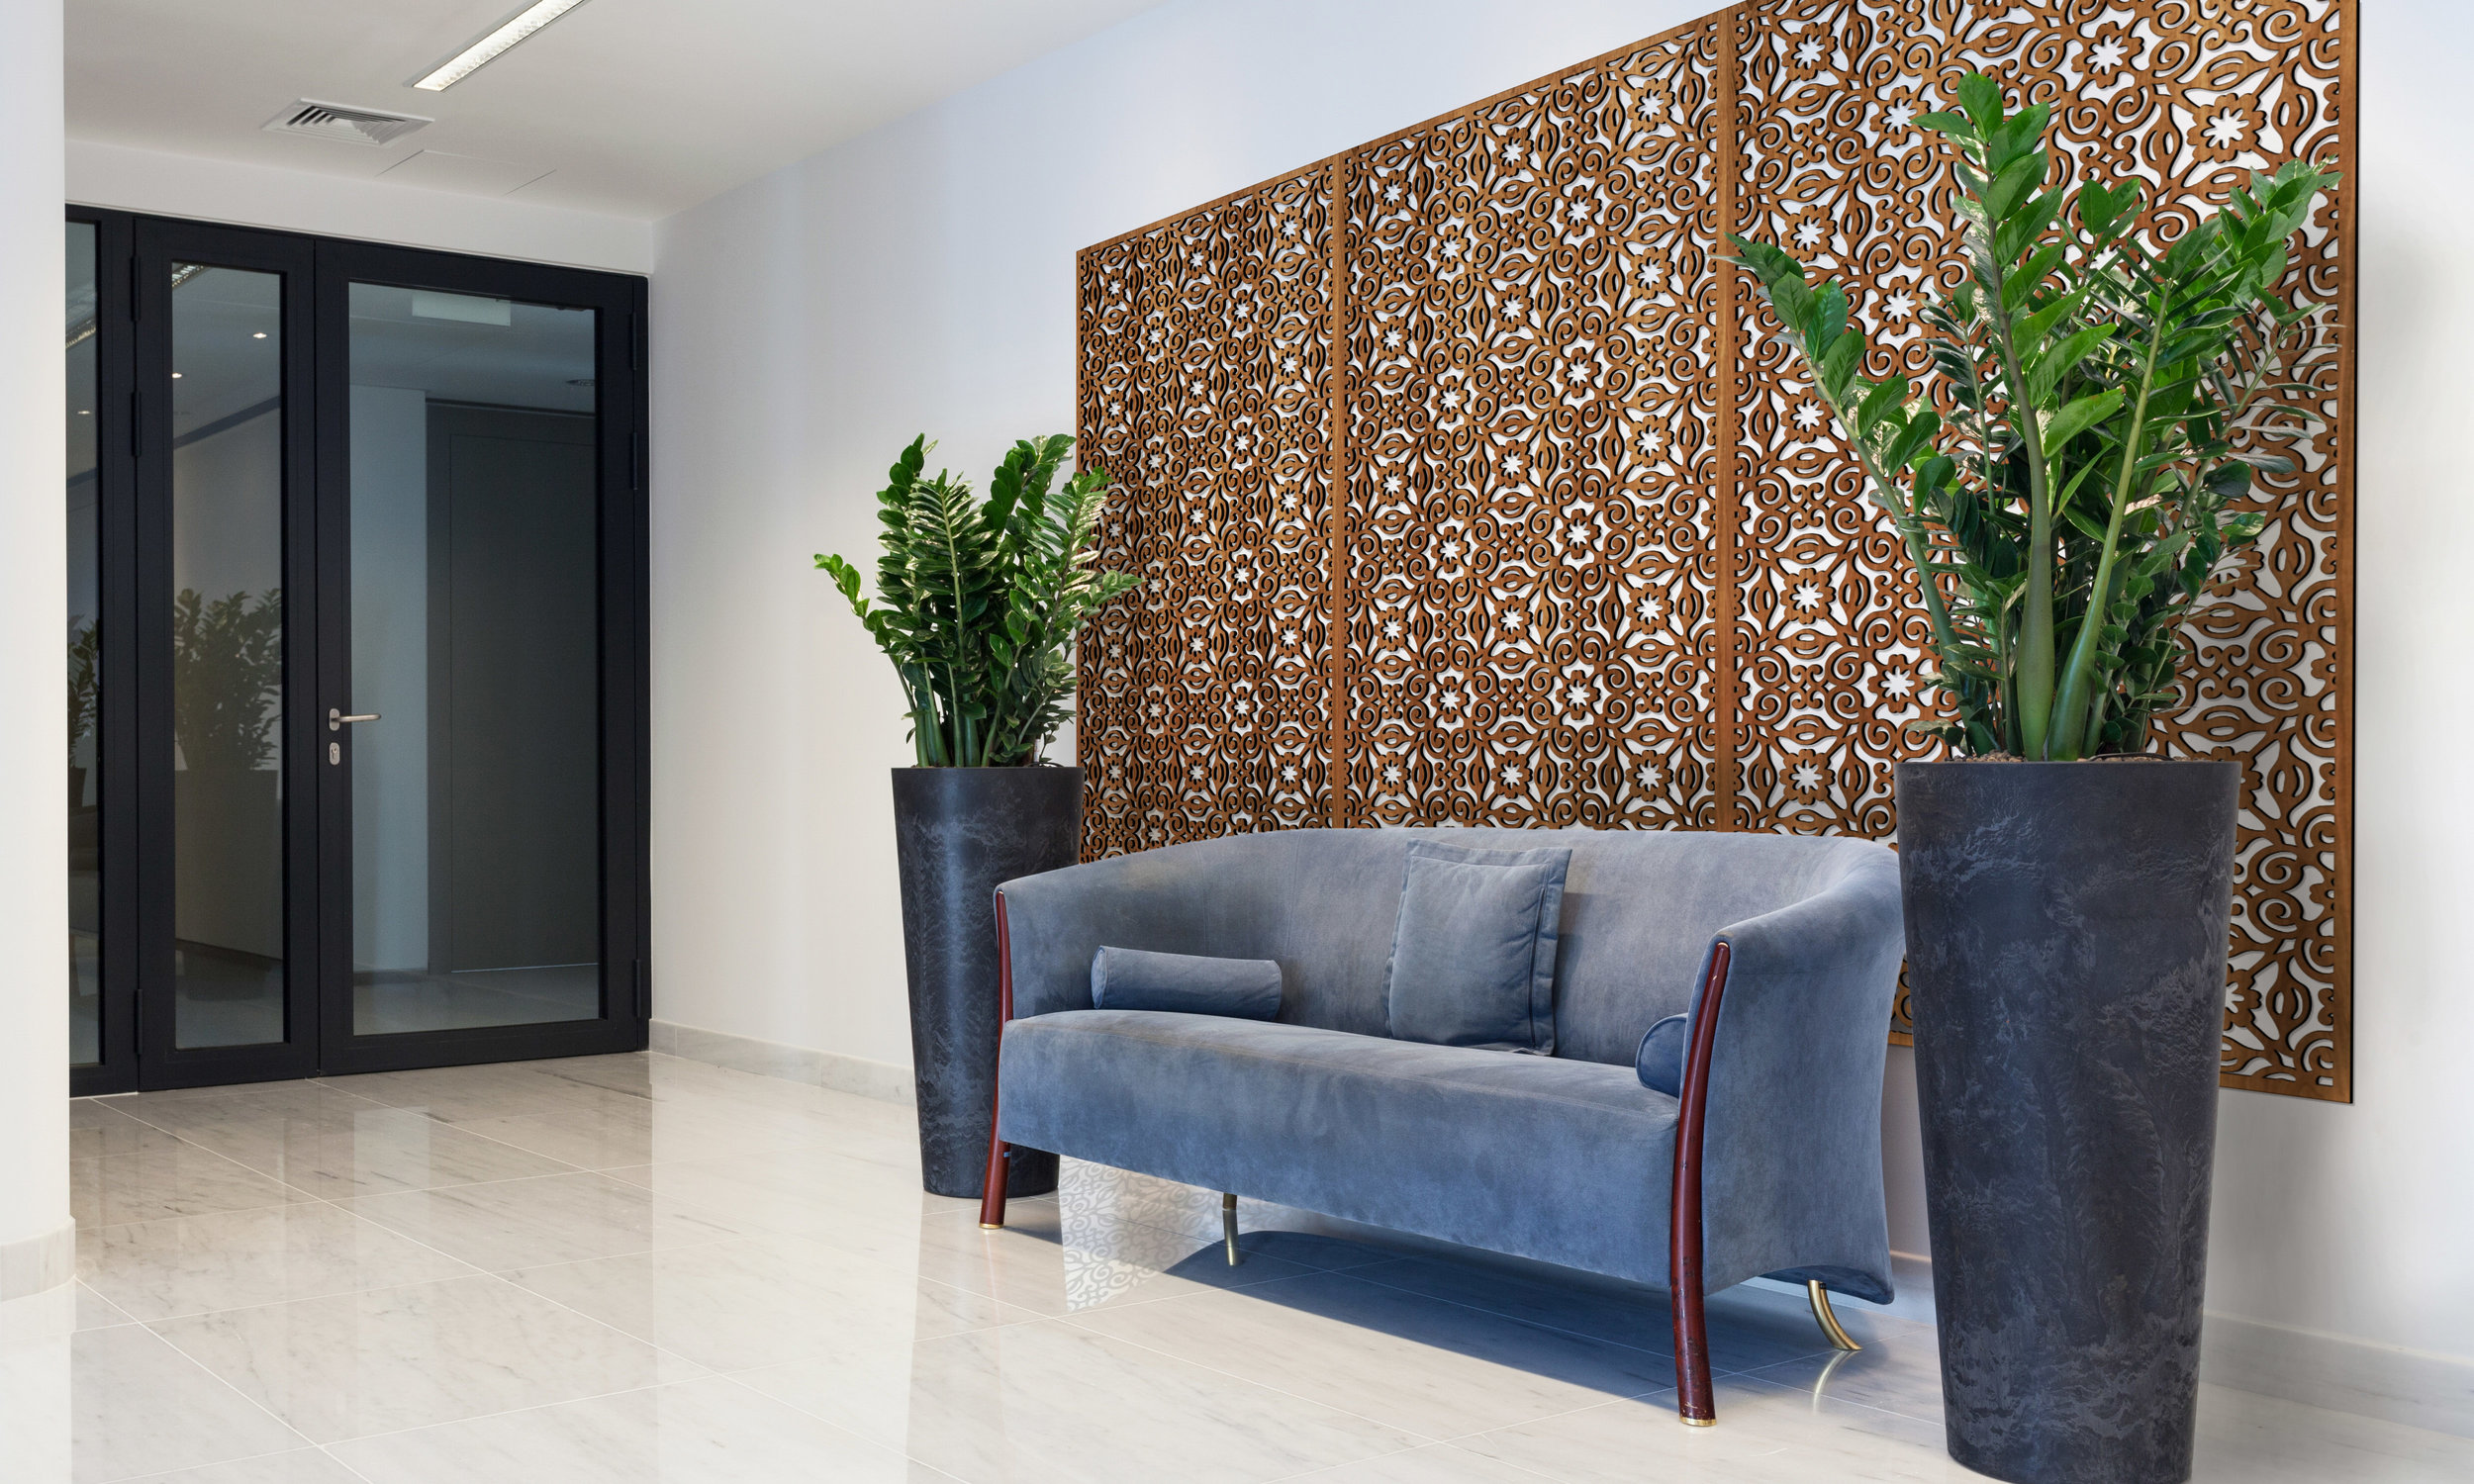 Installation Rendering A   Carmel decorative office wall panel - shown in Cherry wood